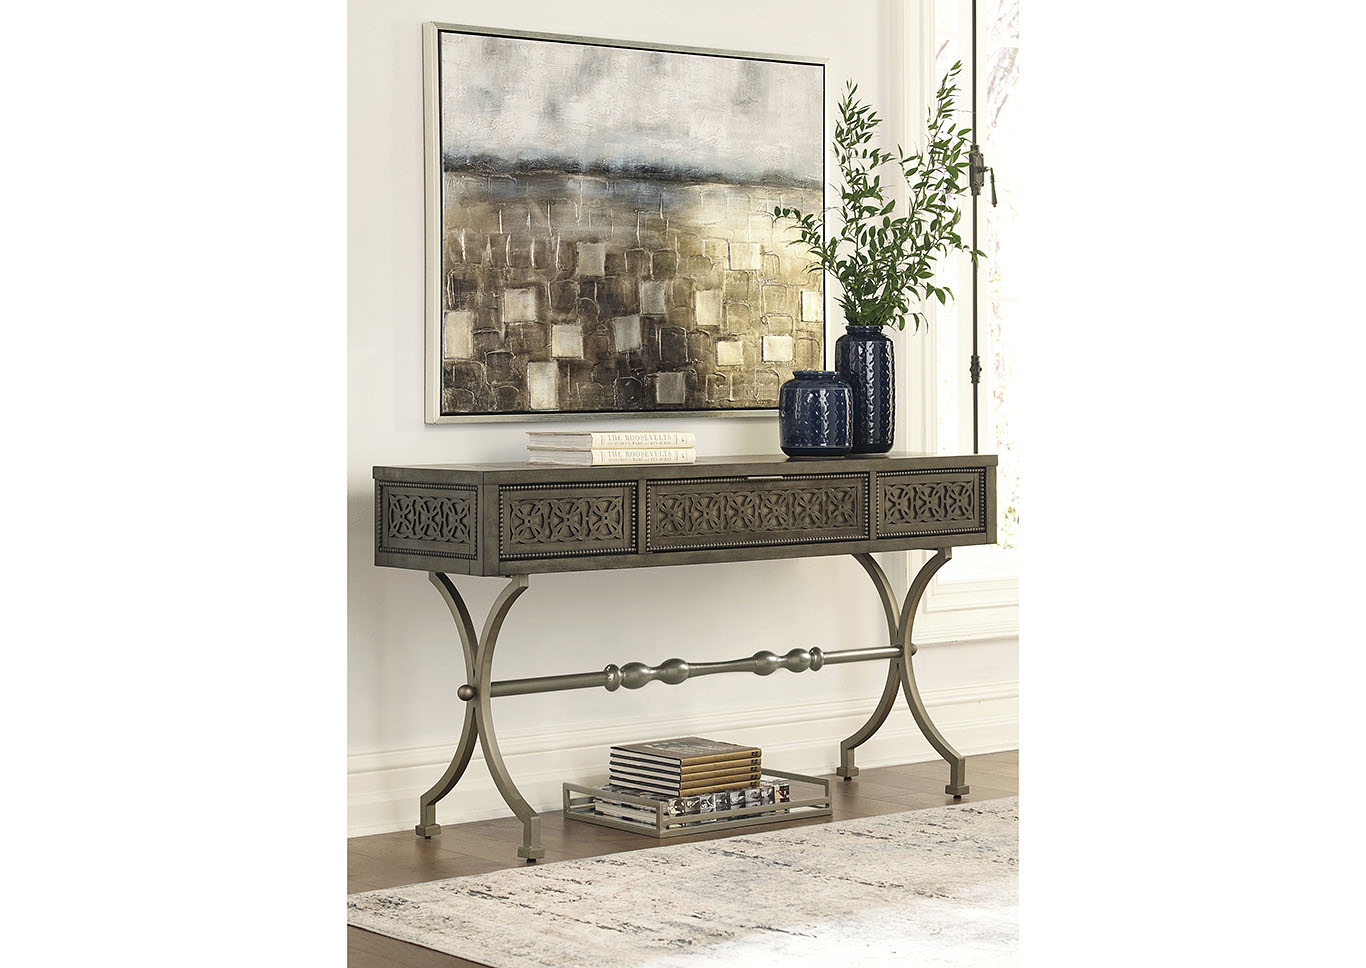 Quinnland Antique Black Console Sofa Table,Signature Design By Ashley